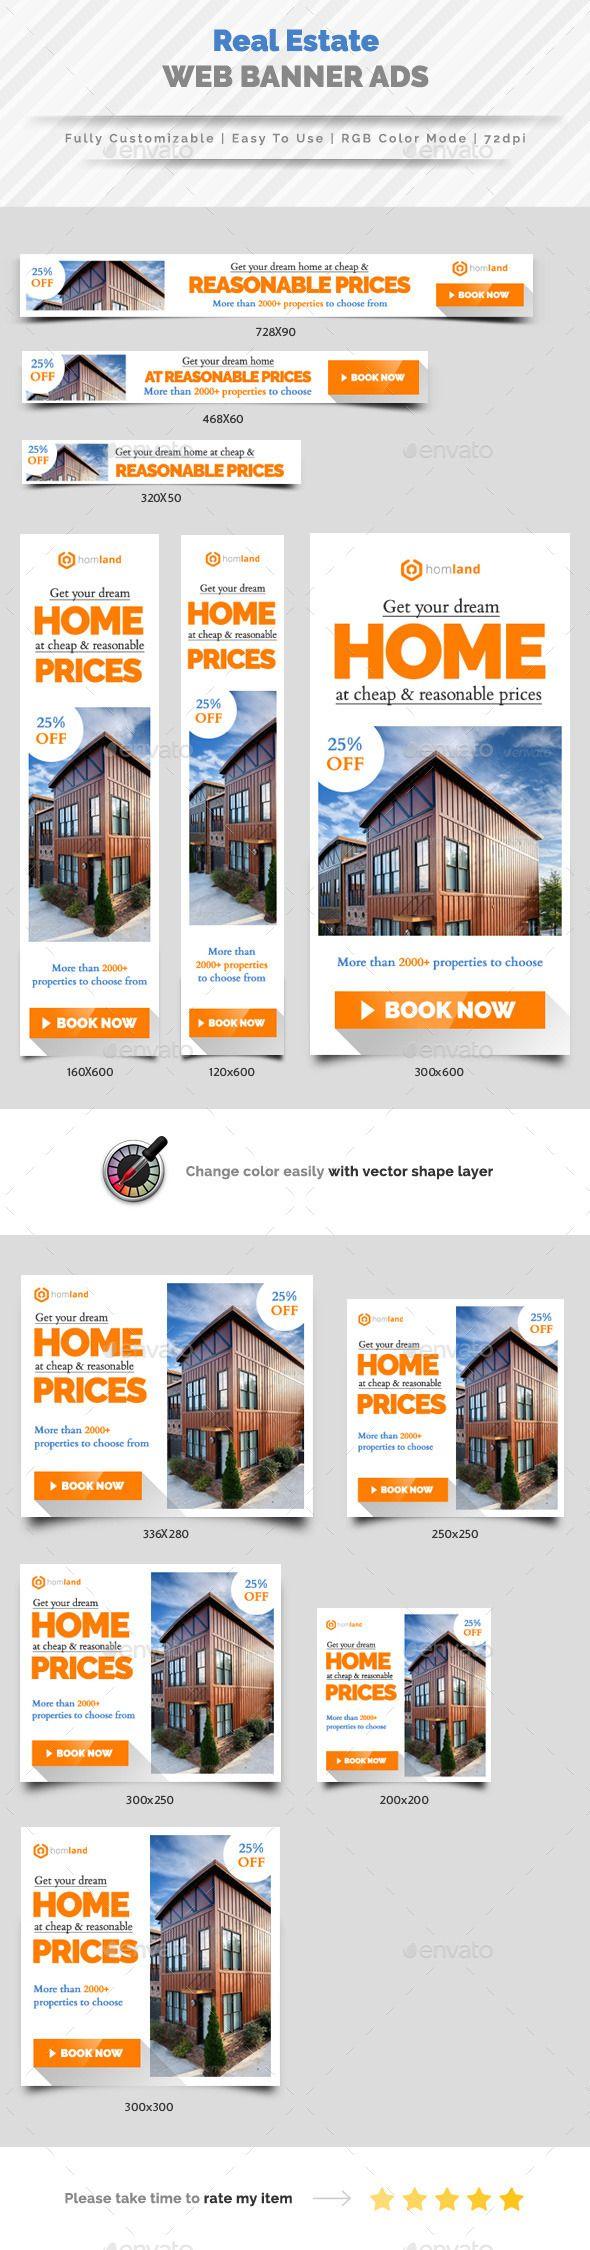 Real Estate Property Banner Ads | Banners, Real estate and Web banners